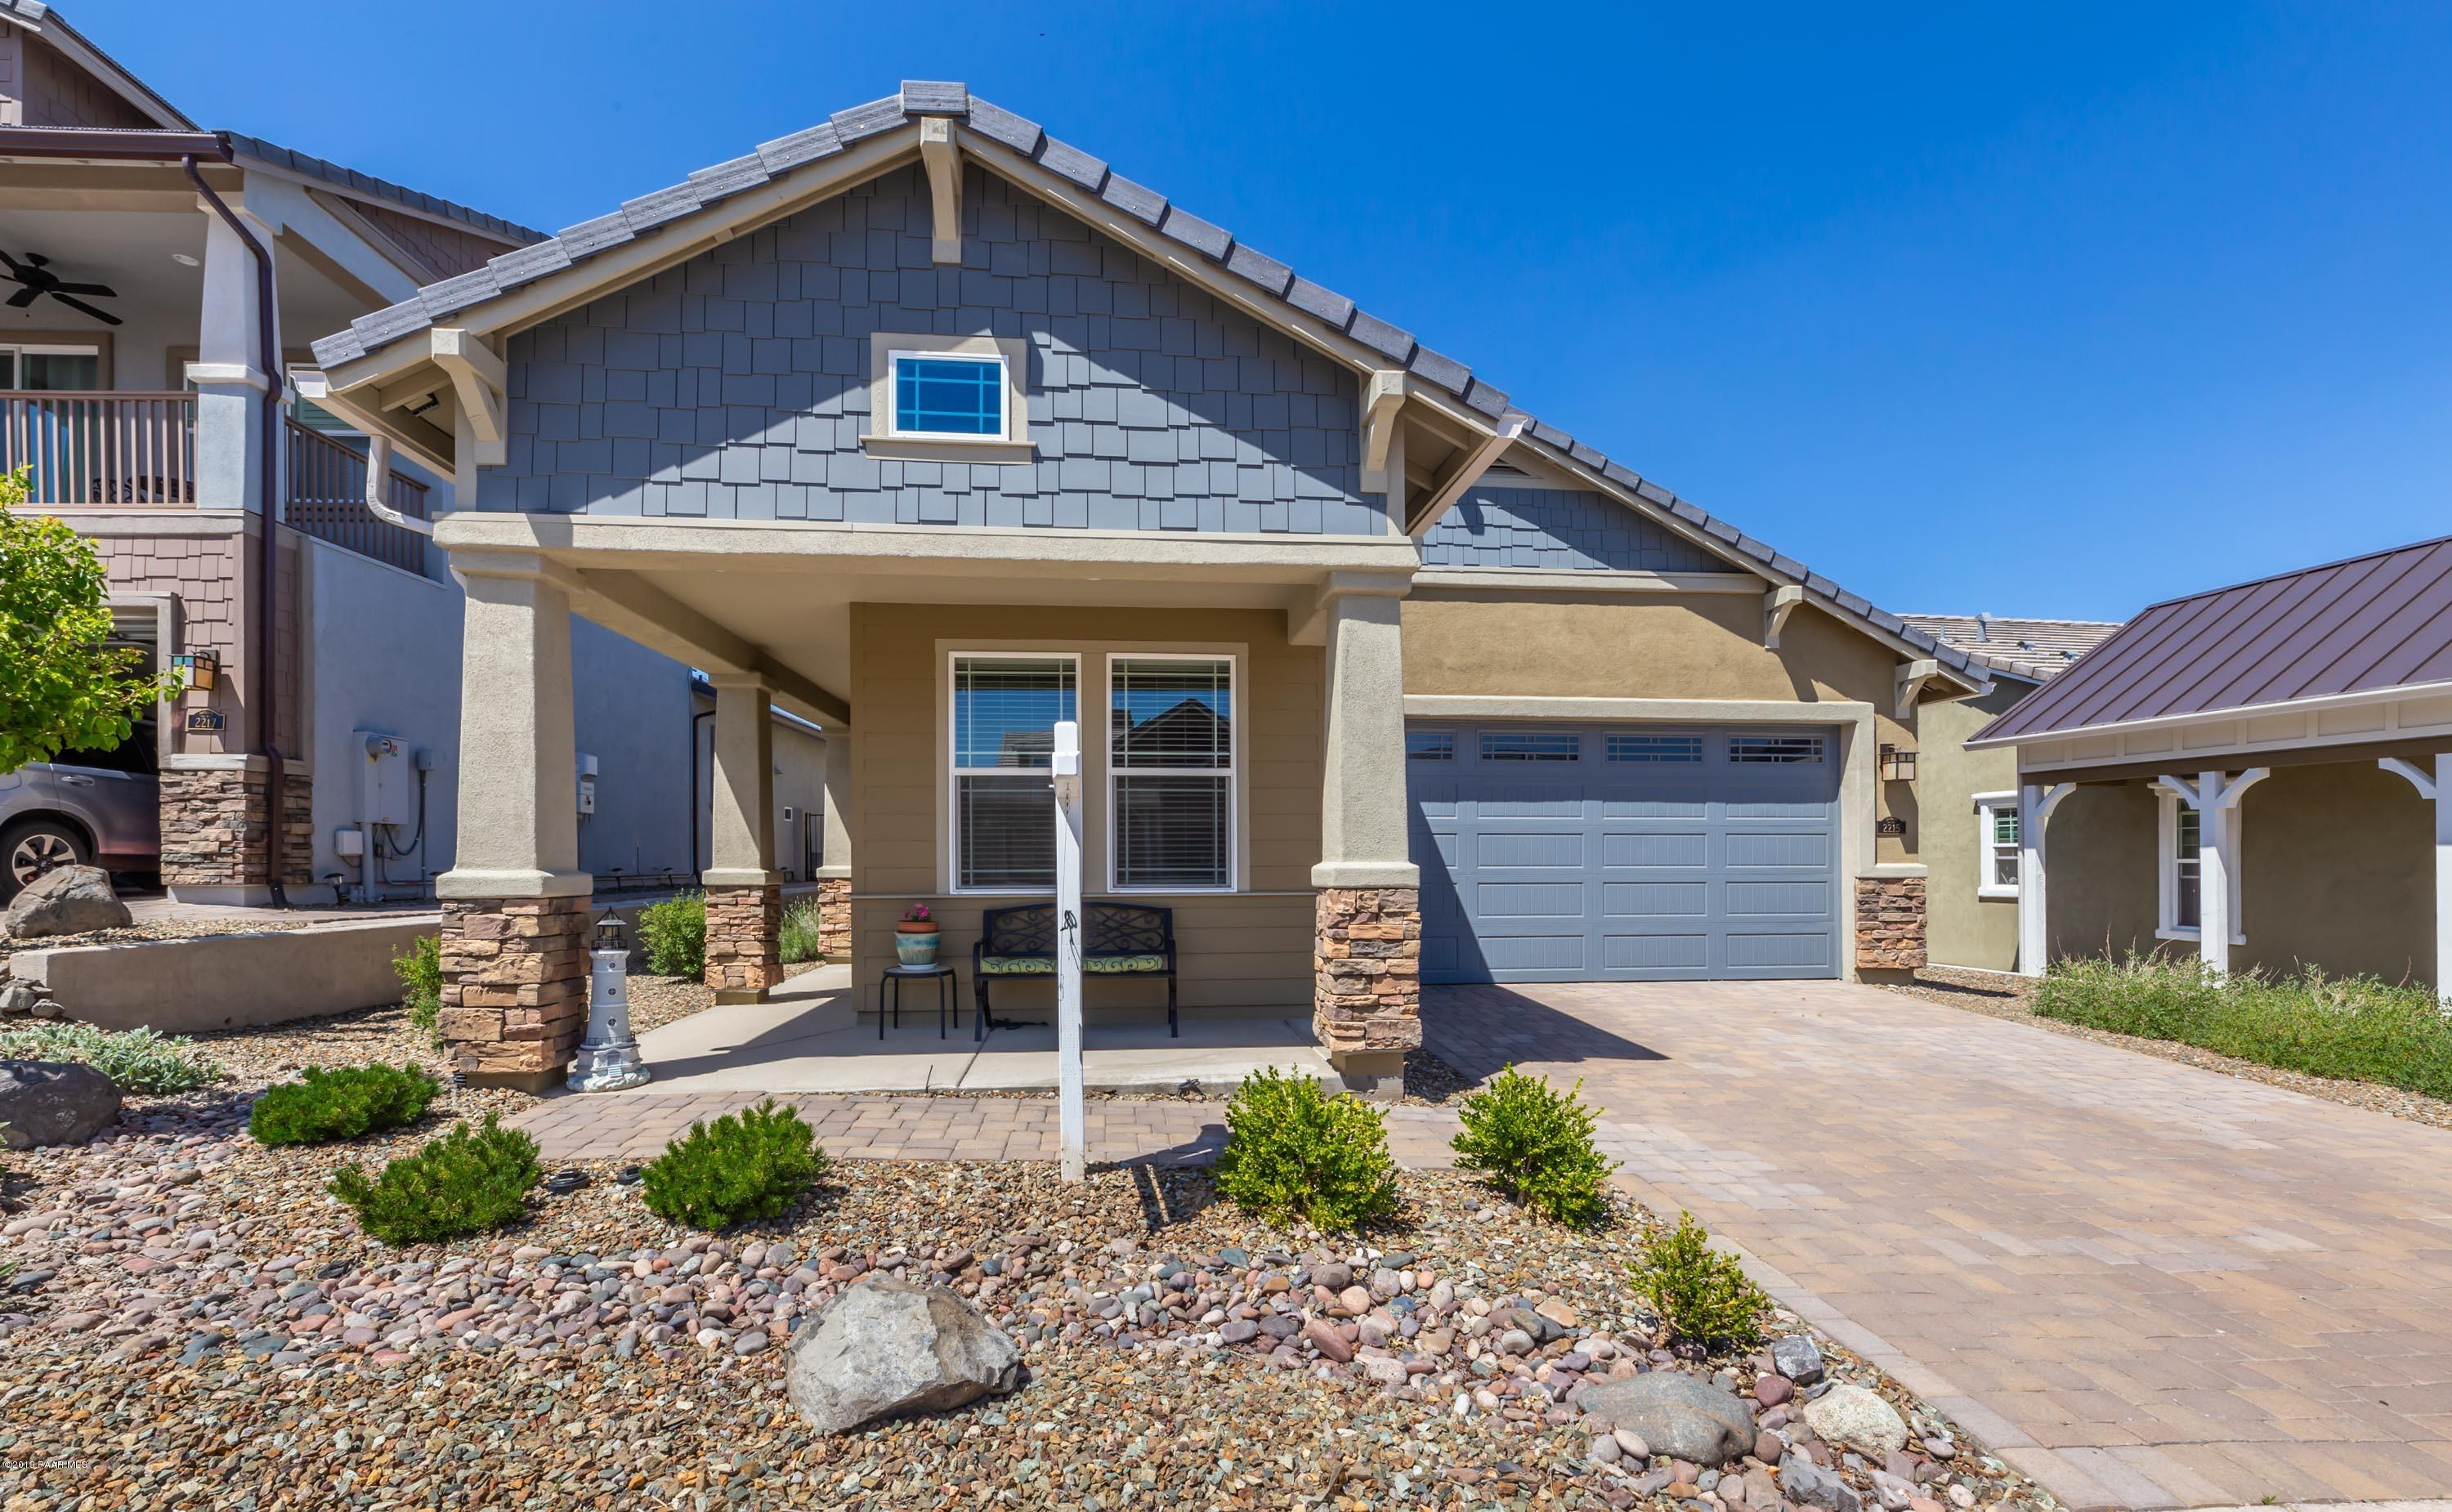 Photo of 2215 Calgary, Prescott, AZ 86301